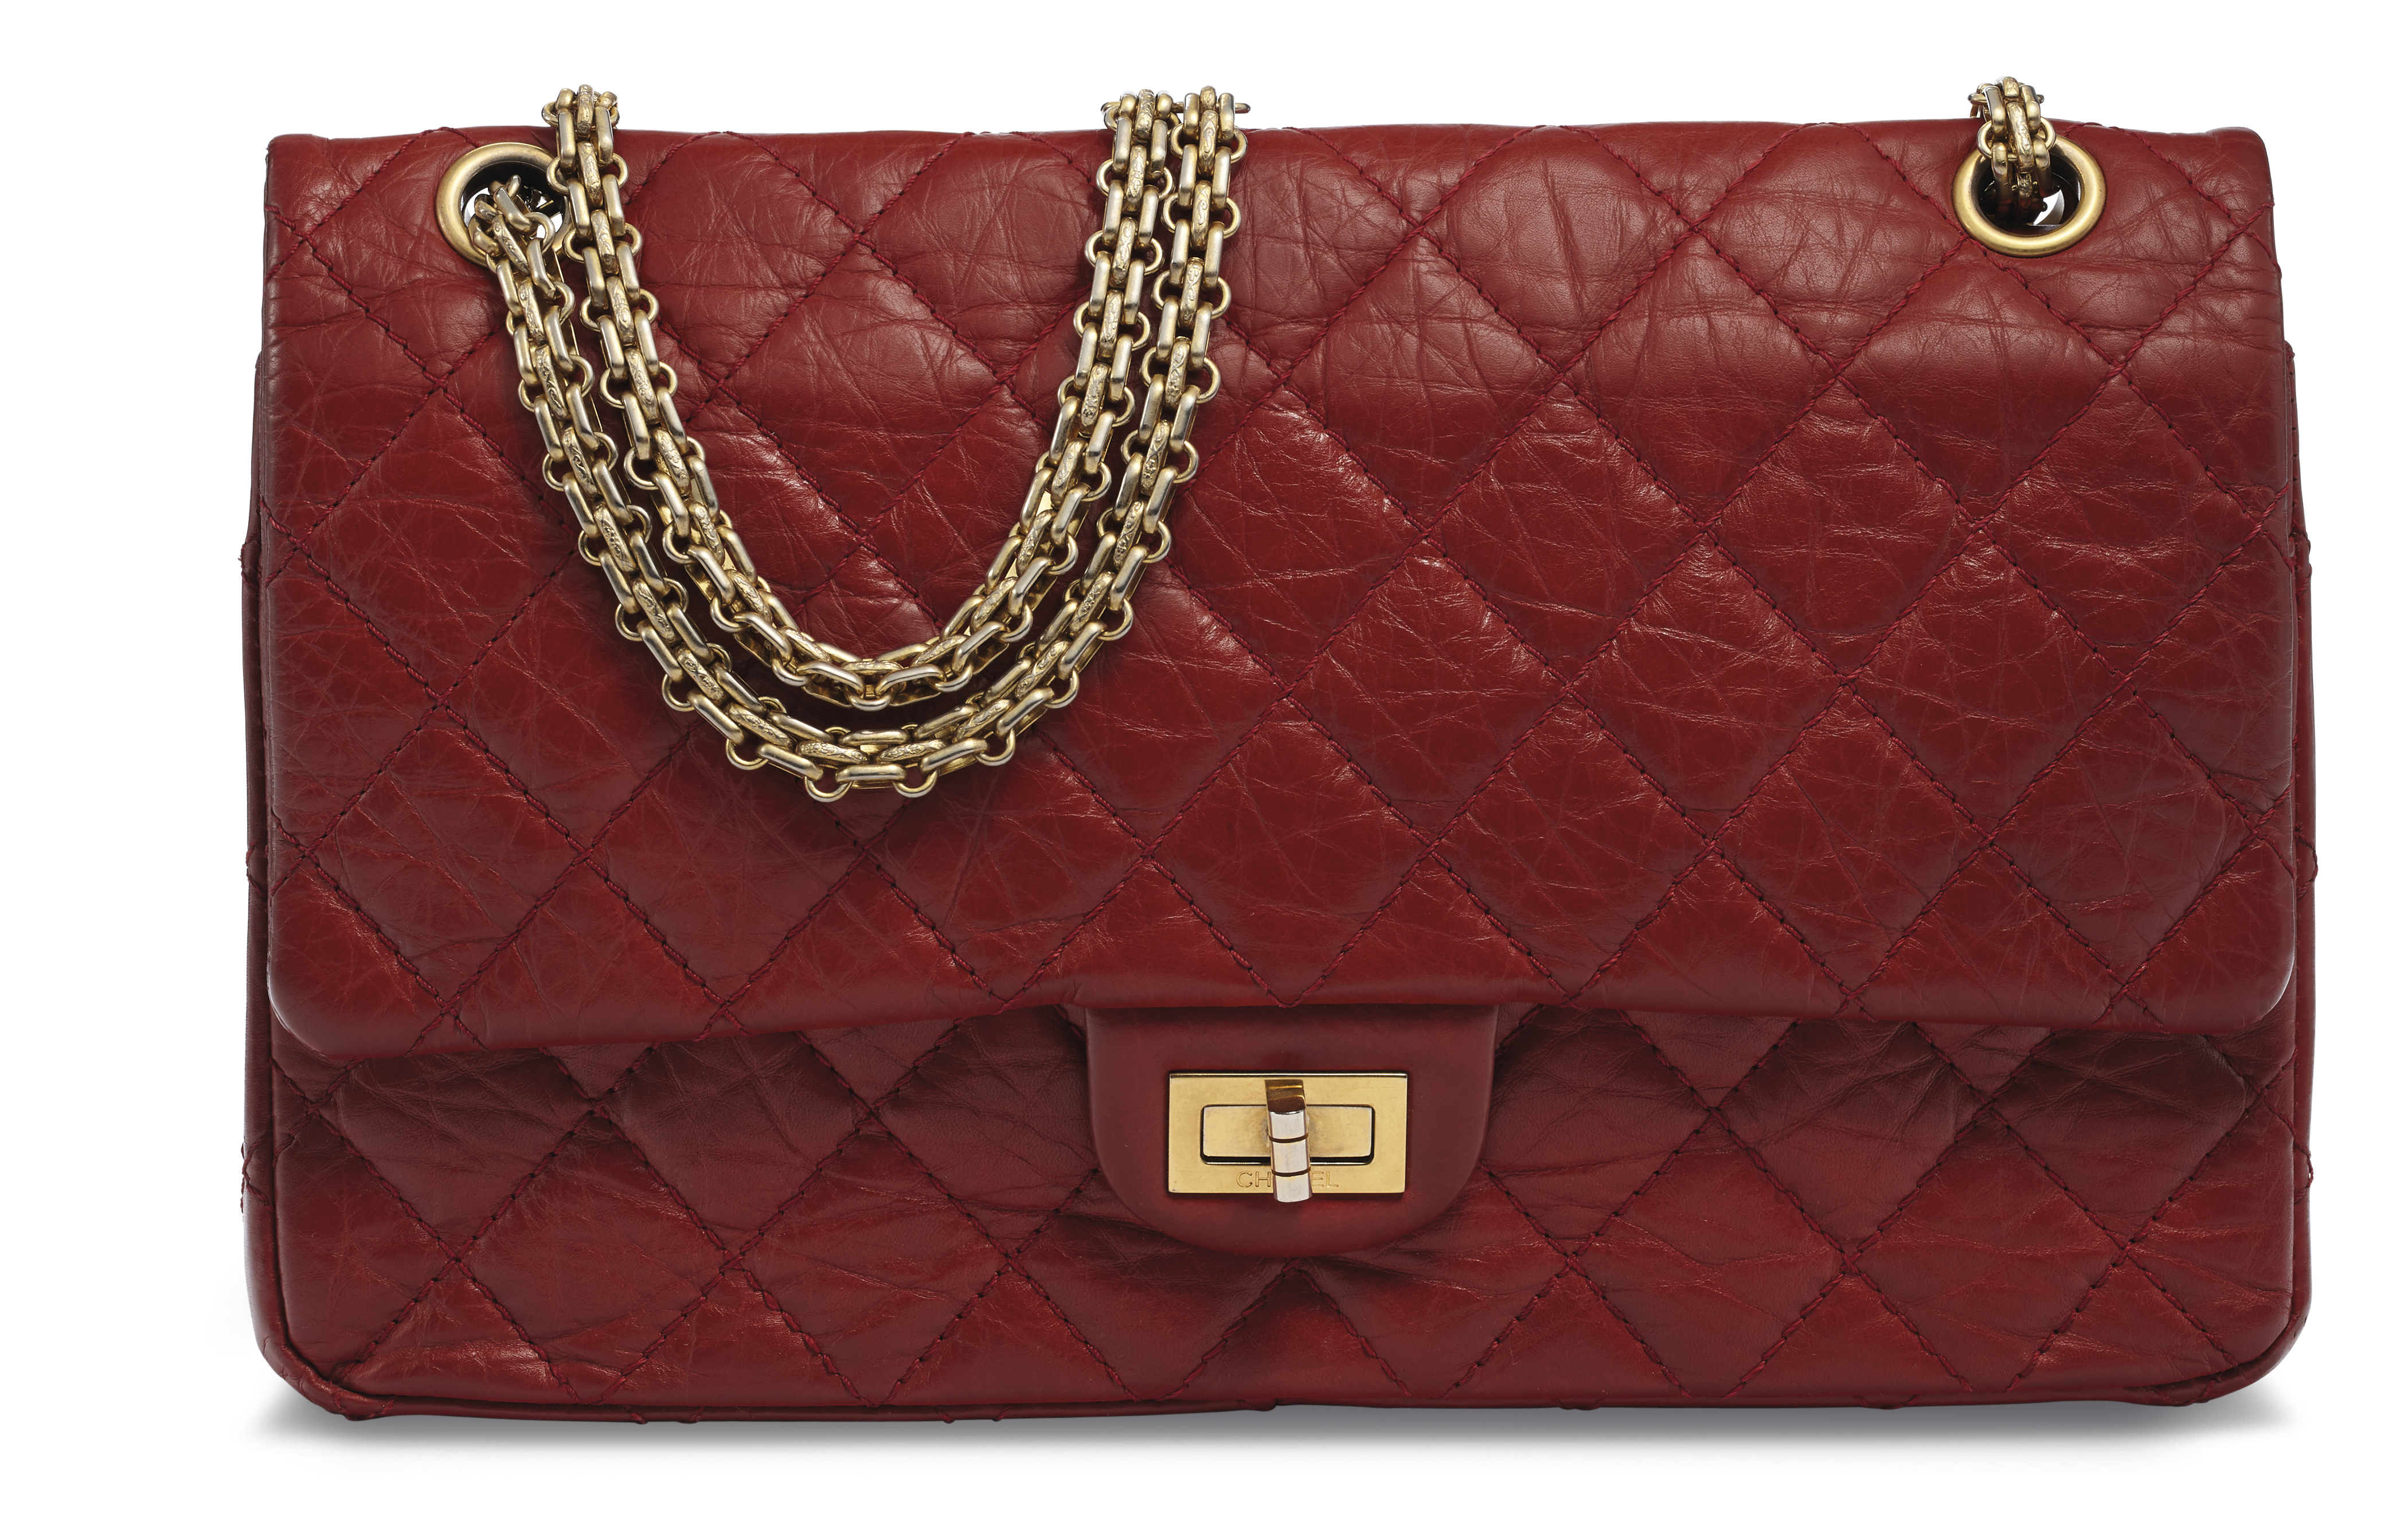 2019 year for lady- Love Chanel day 16: the red flap